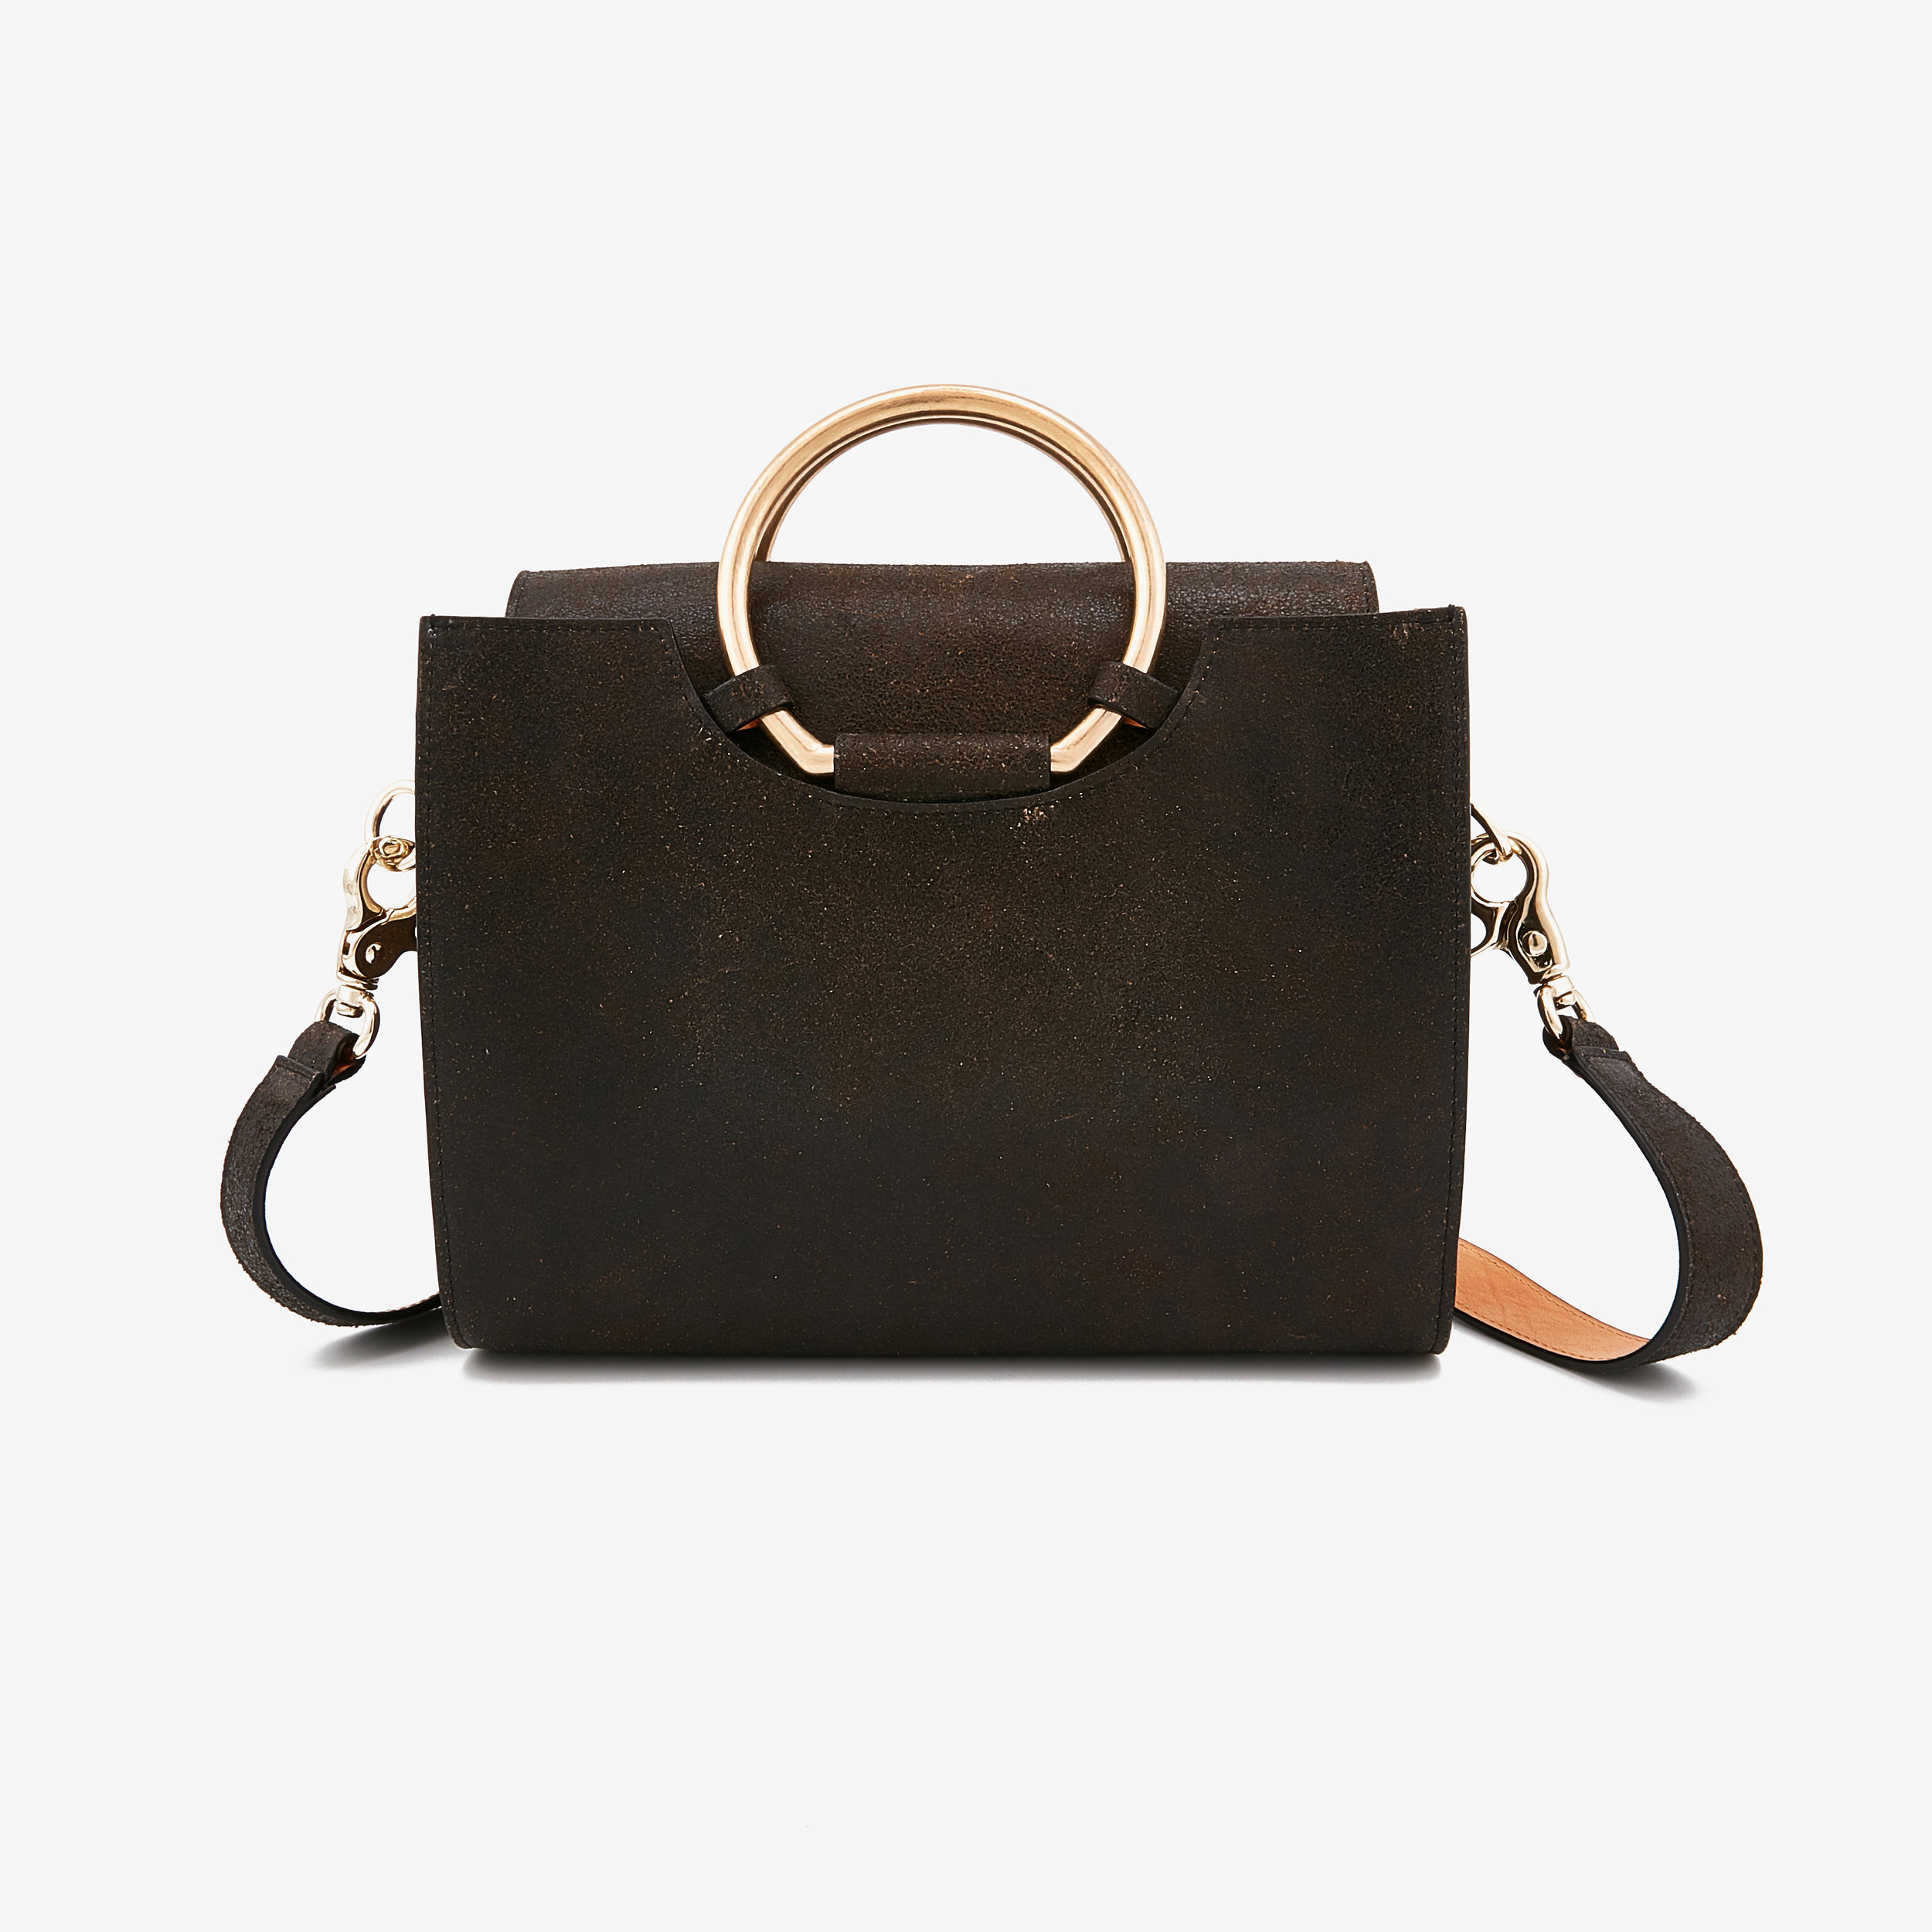 SCARLETT OLD BLACK - 450,00€